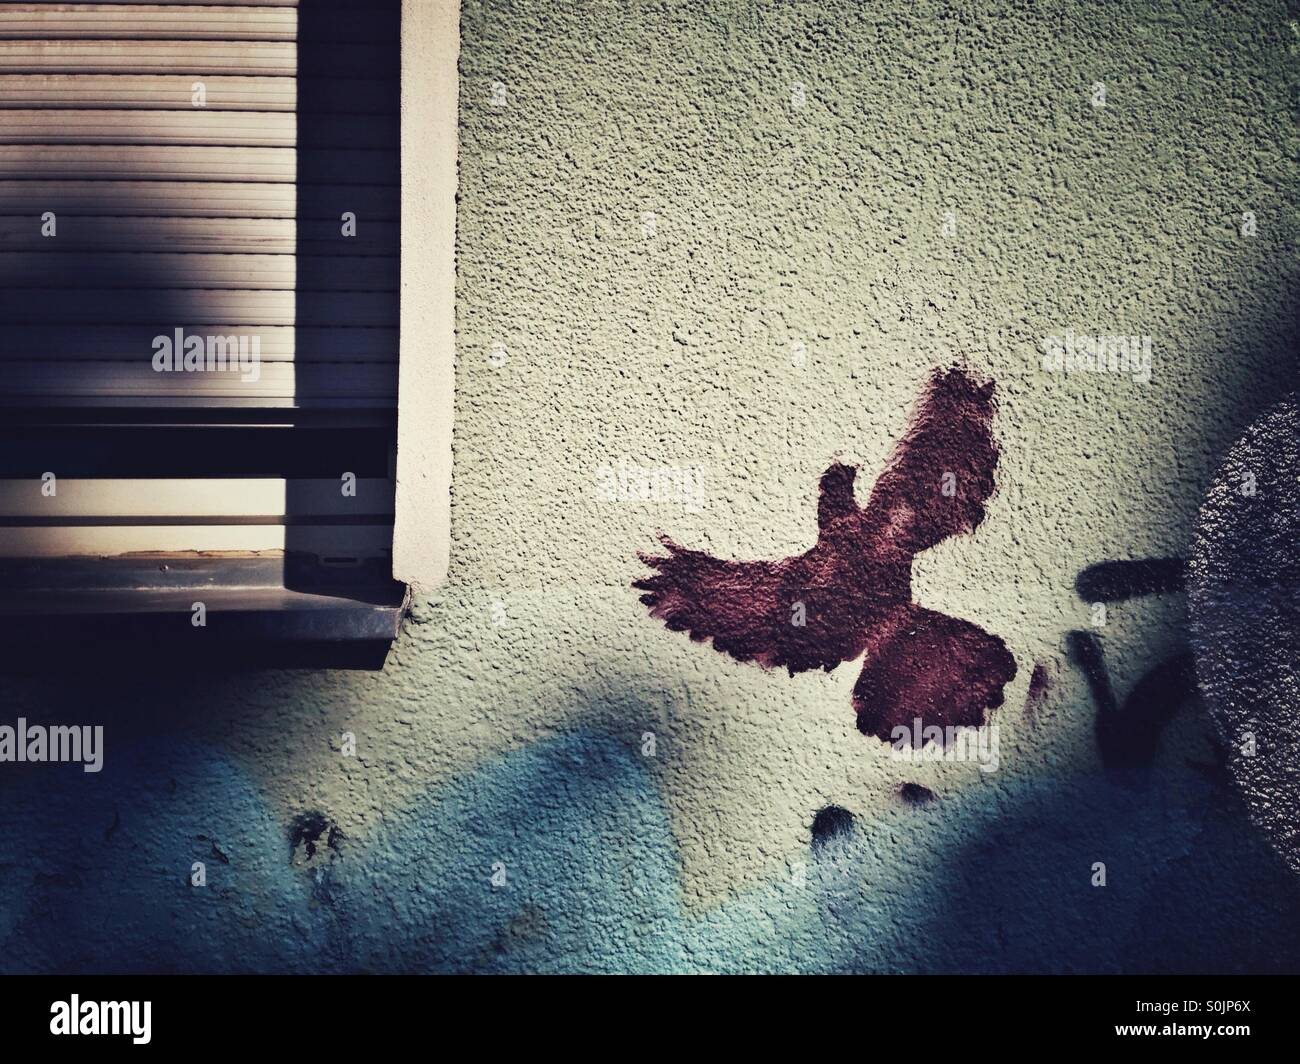 Pigeon Graffiti in Berlin neukoelln - Stock Image